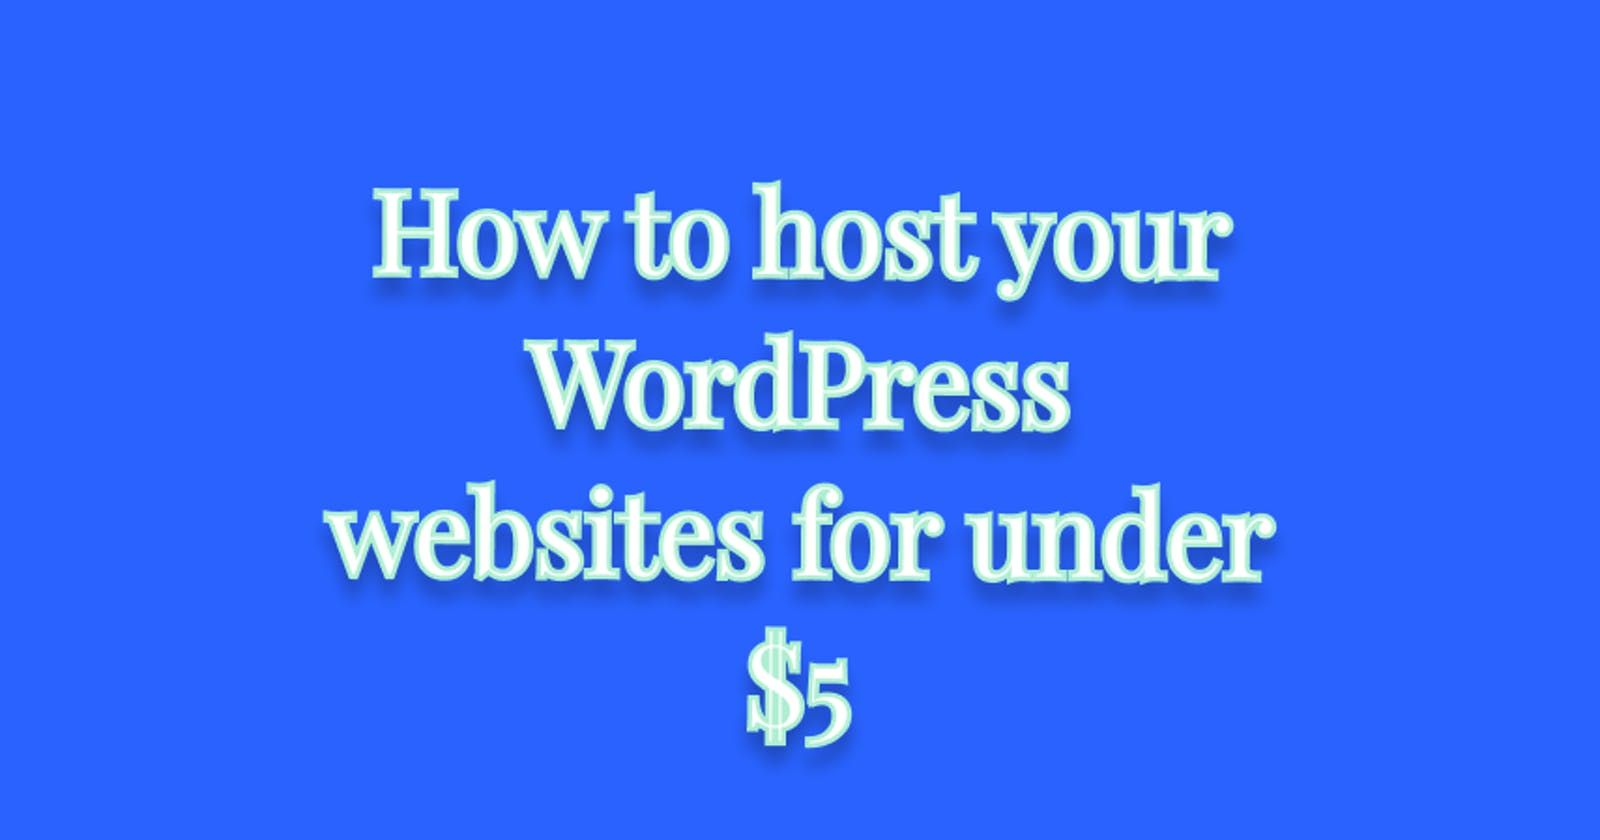 How to host your WordPress websites for under $5 (a step by step guide)